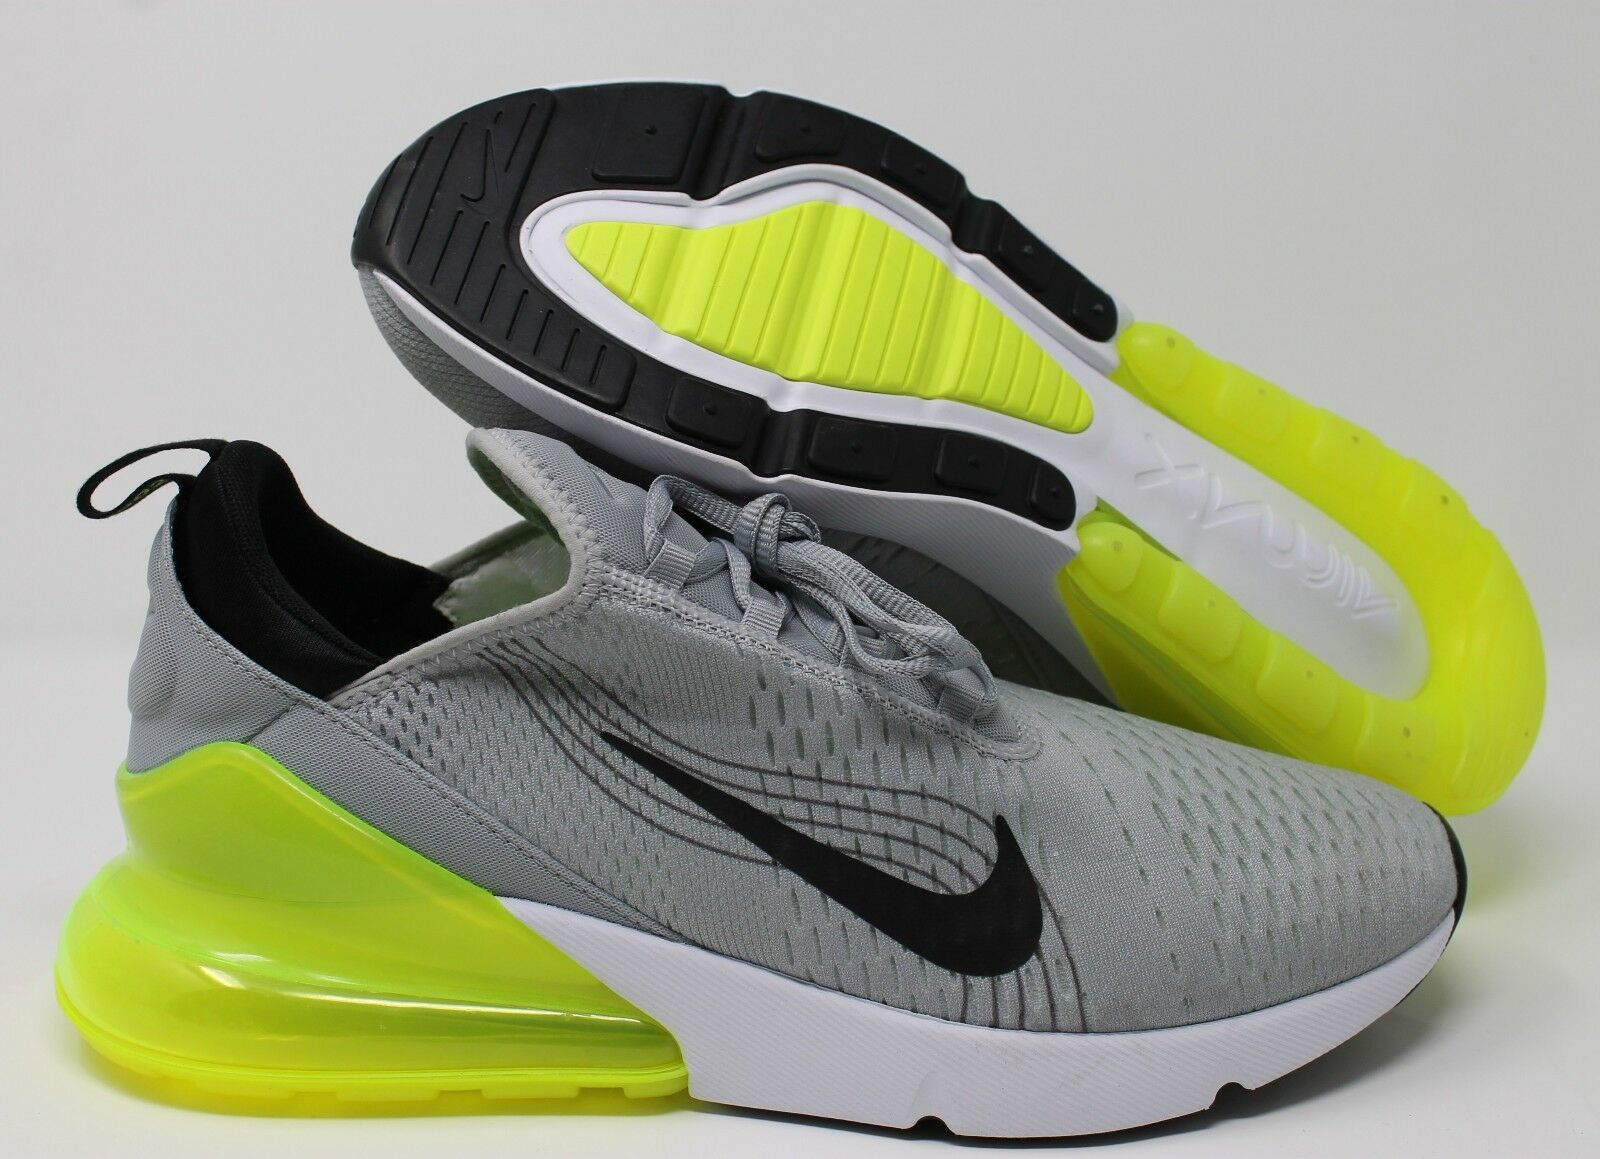 Nike iD Air Max 270 Grey-Black-Lime sz 13